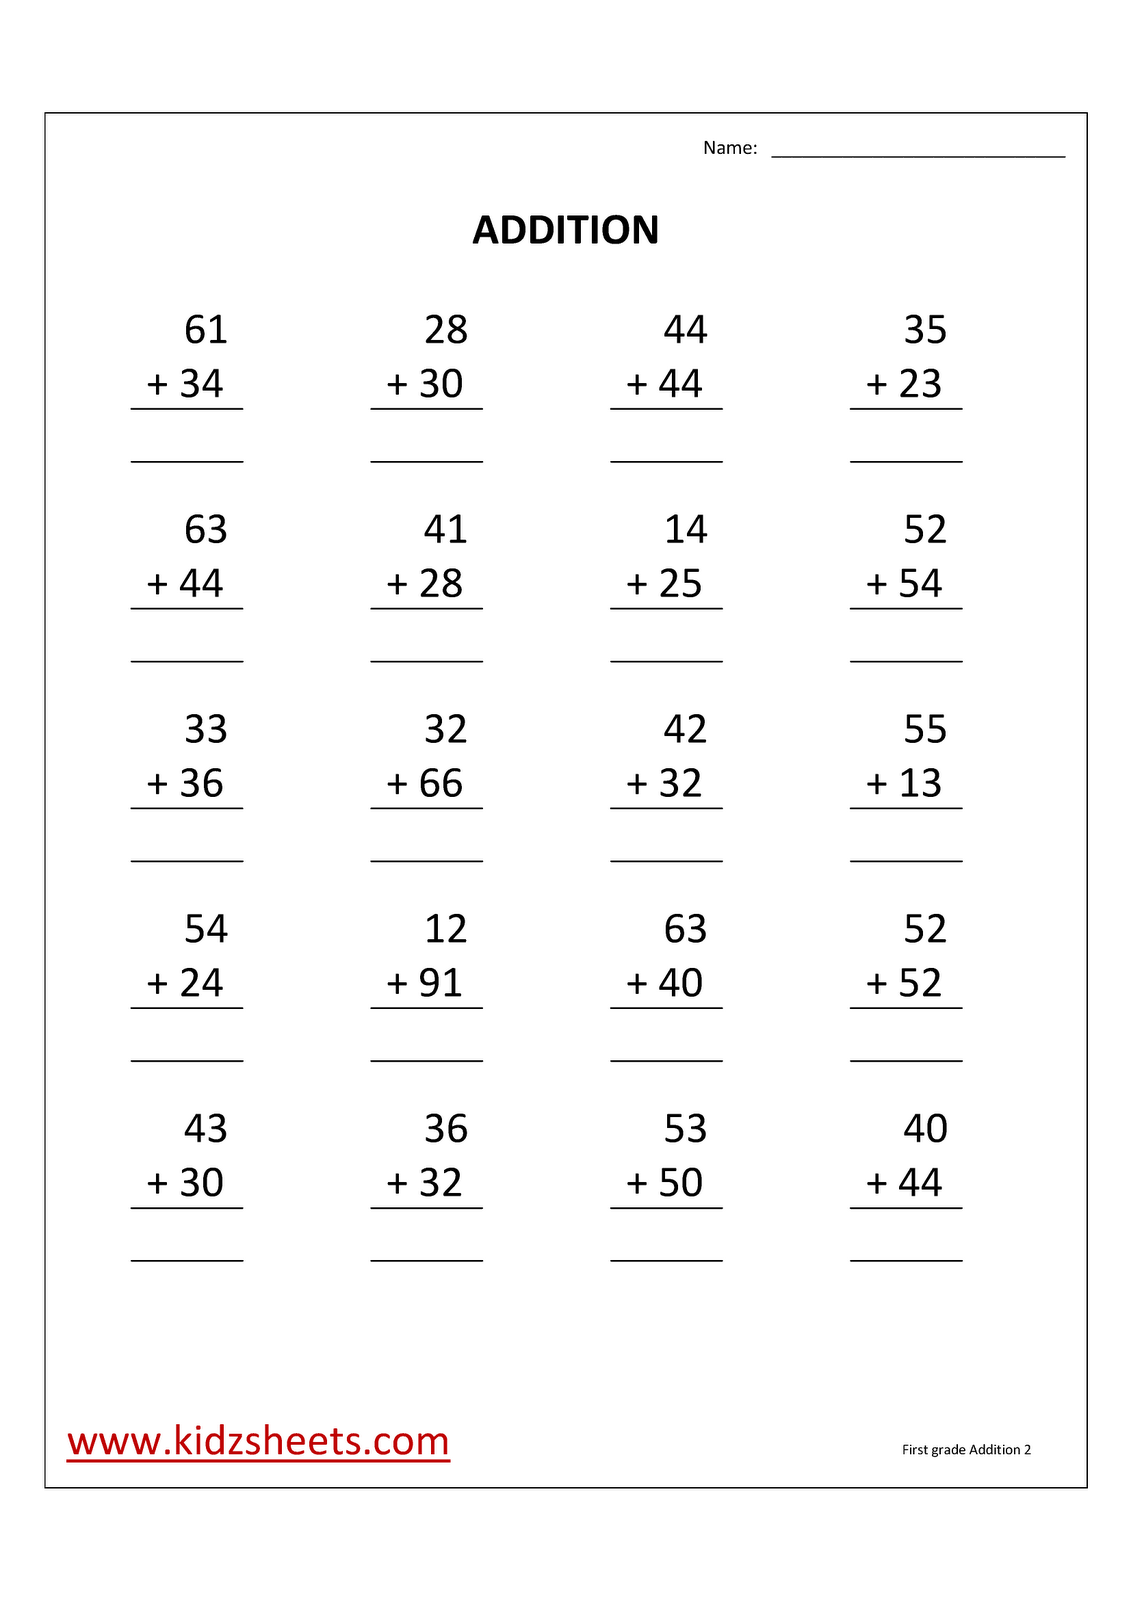 addition and subtraction worksheets for 1st grade – Addition and Subtraction Worksheet for First Grade